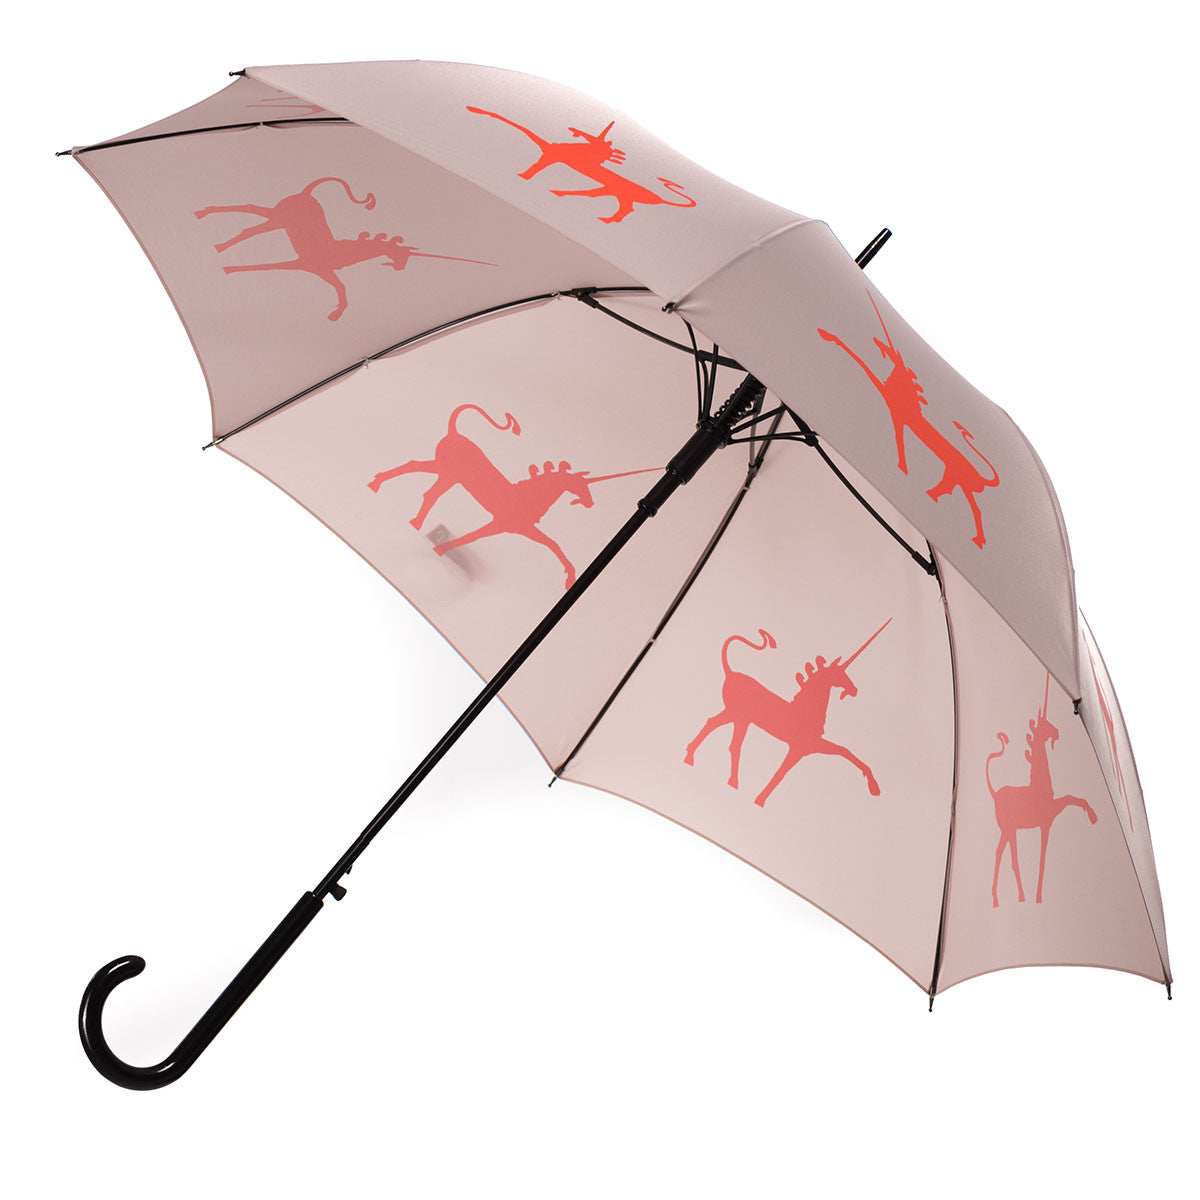 Unicorn Umbrella Flame Red/Orange on Warm Taupe w/ sleeve and shoulder strap